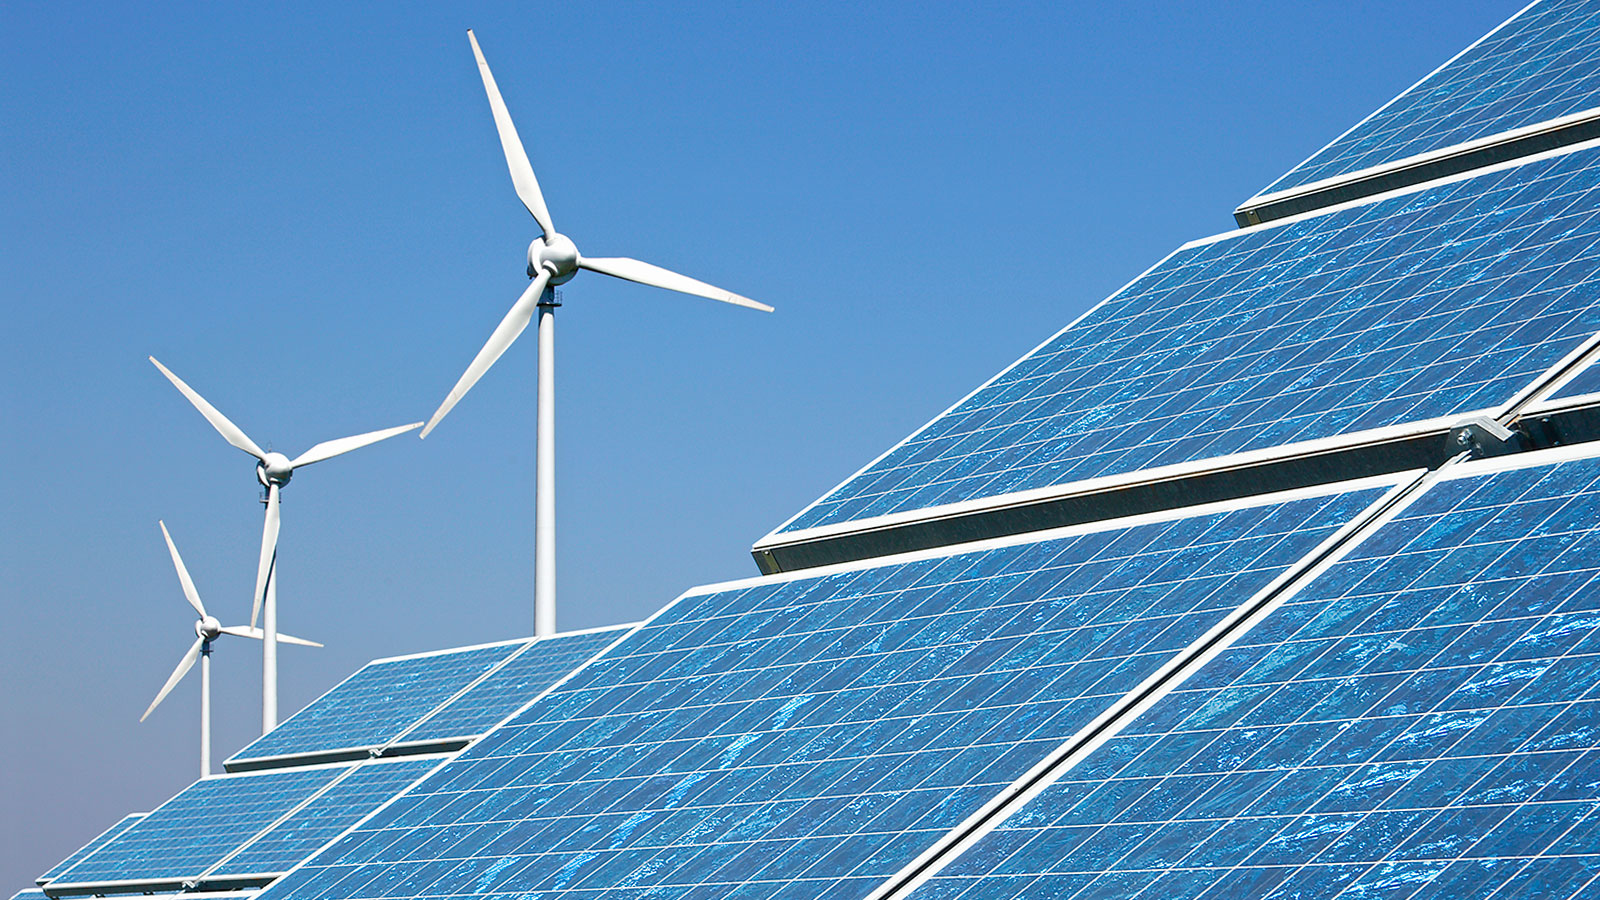 Photograph of solar panels with wind turbines in the background